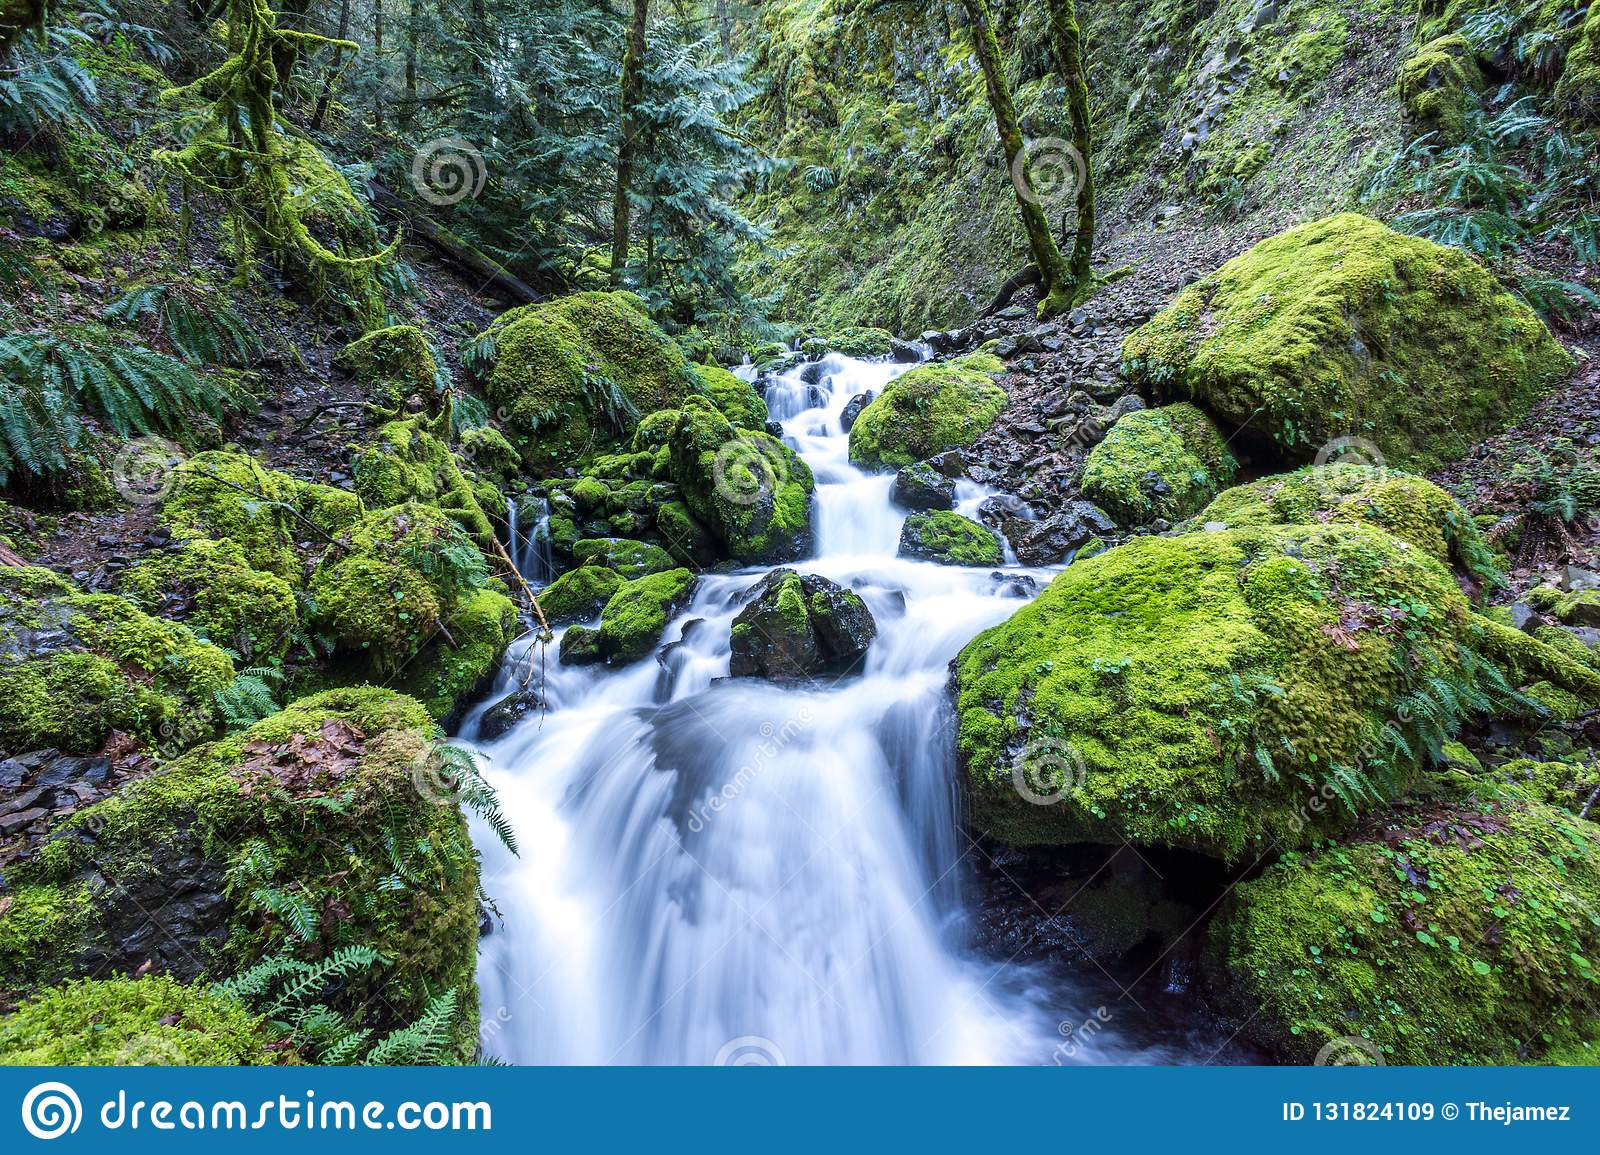 Iconic Moss covered rocks at stream in Oregon, Columbia River Gorge popular with tourists